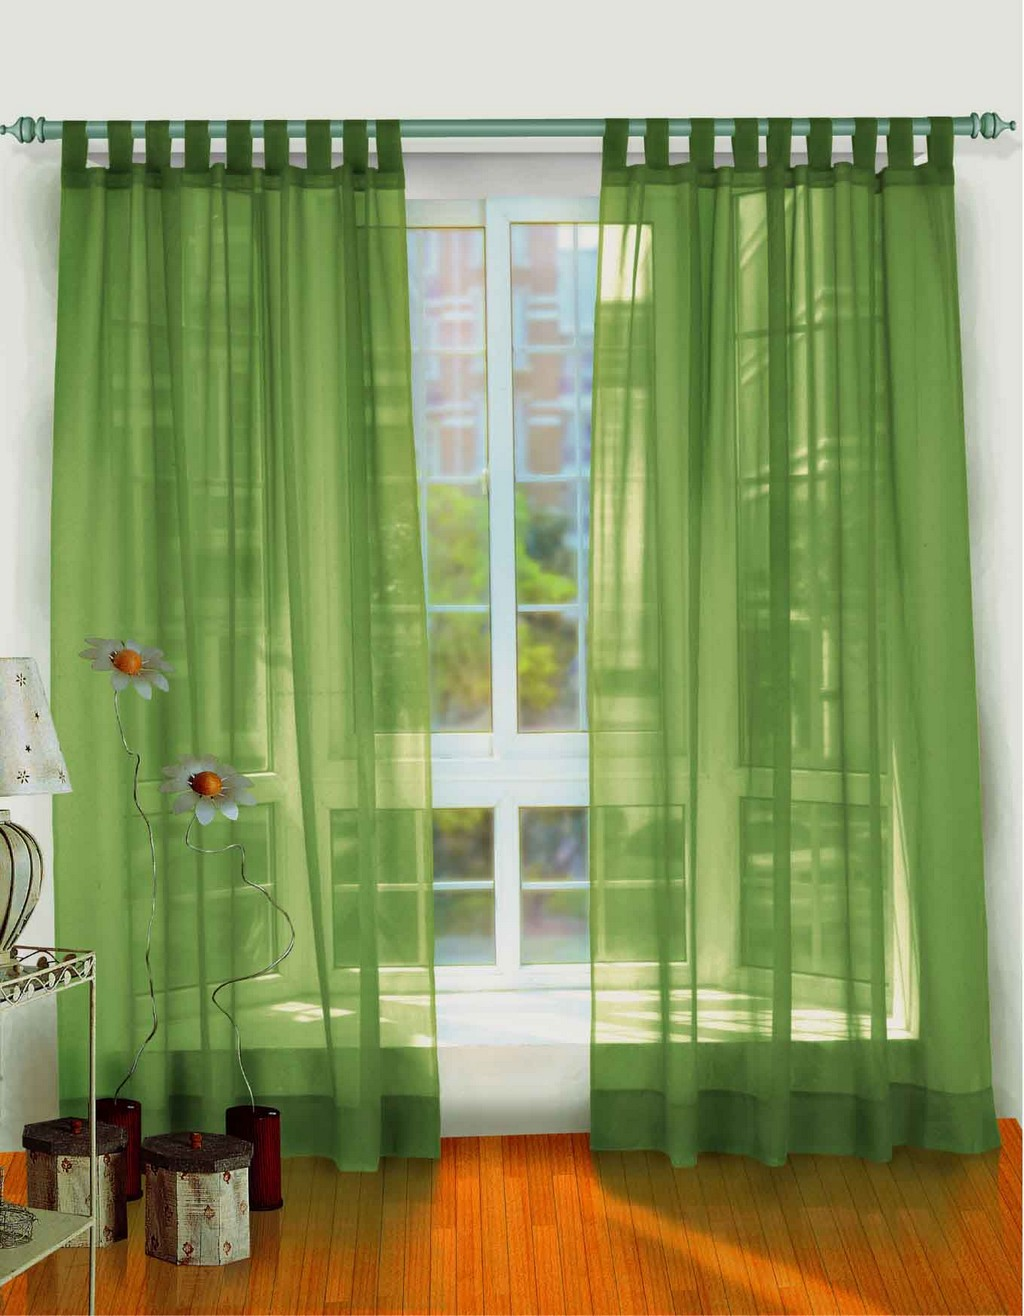 drapes window treatments, roses drapes, motorized drapes, bedroom drapes